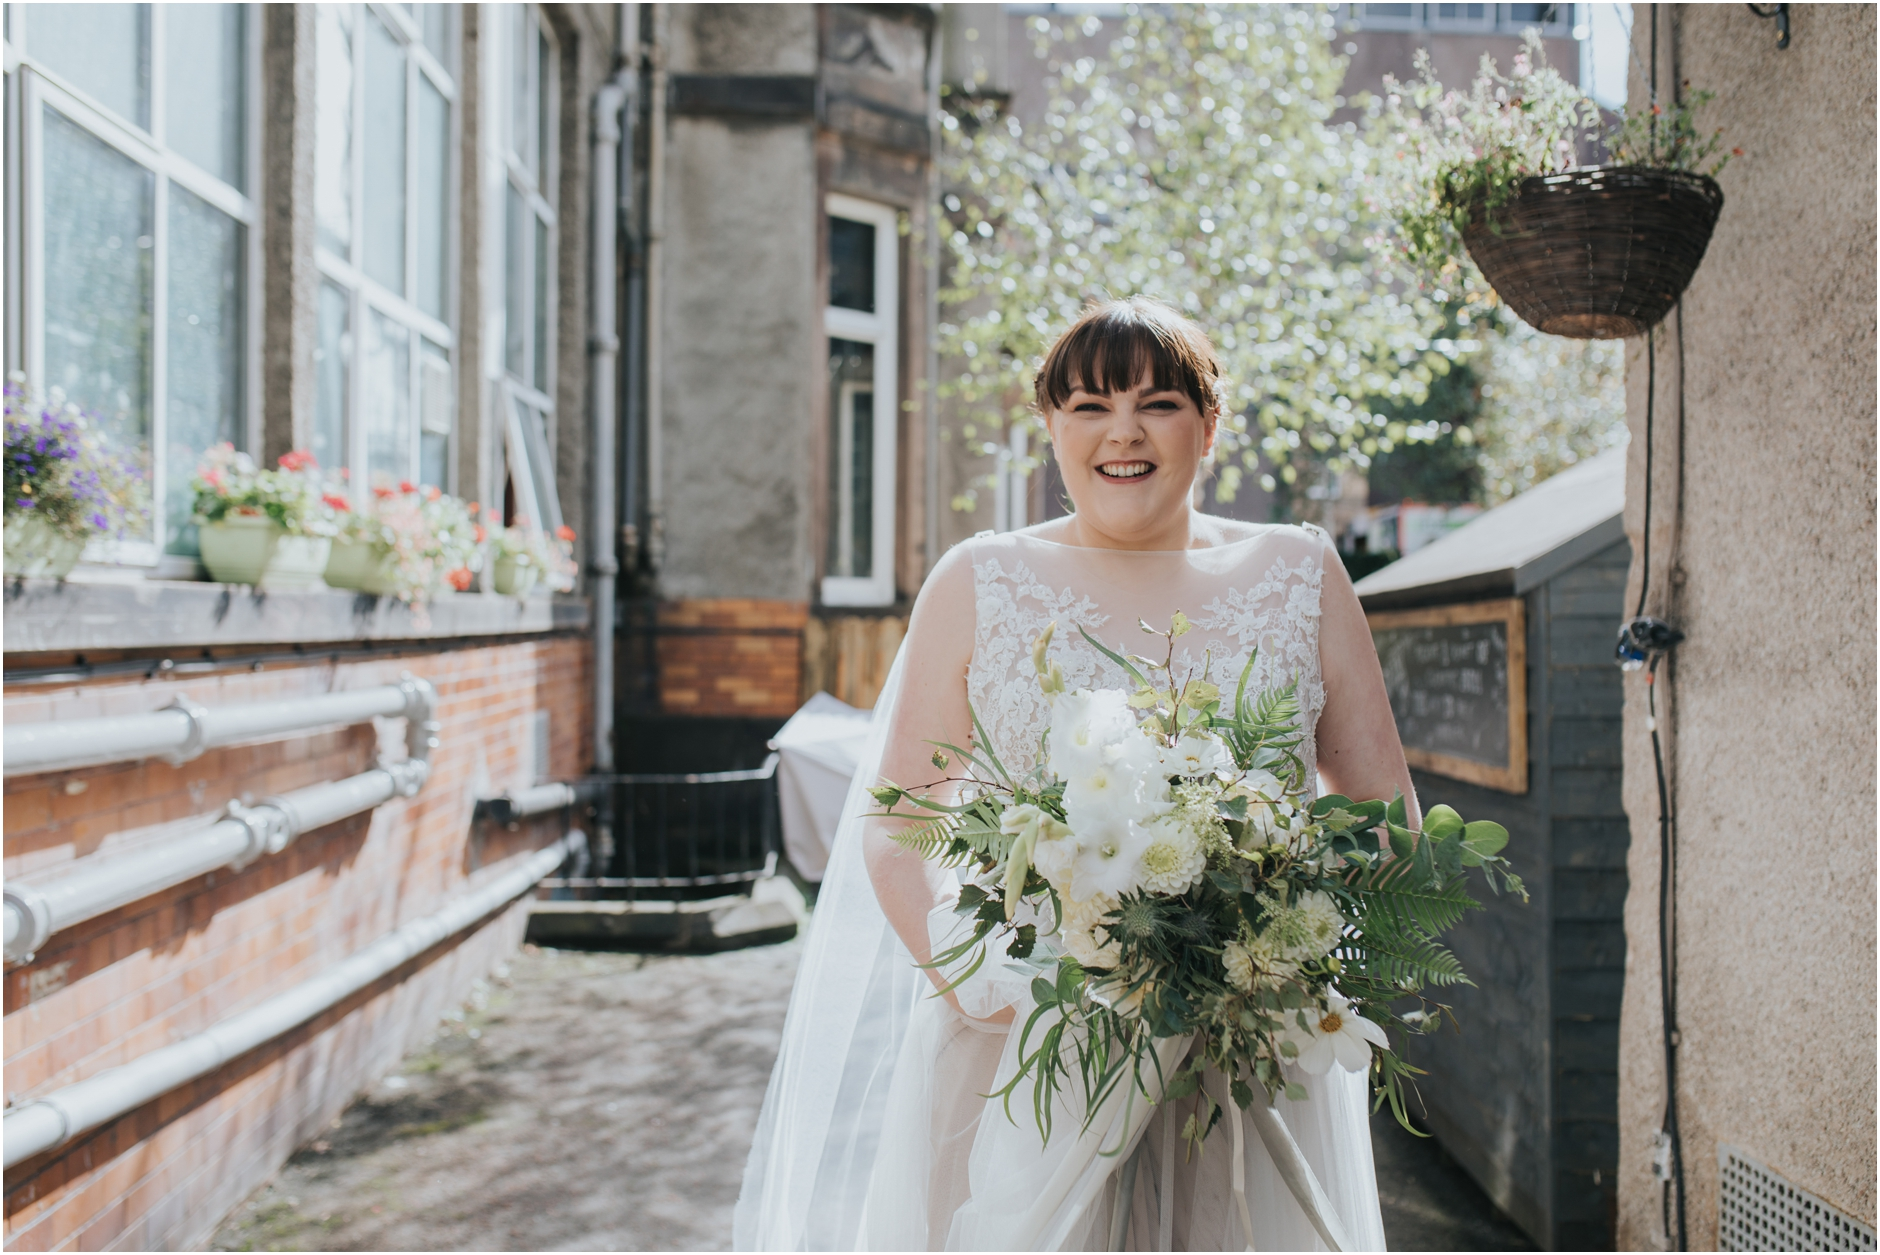 bride smiling and happy on her wedding day at sumerhall edinburgh